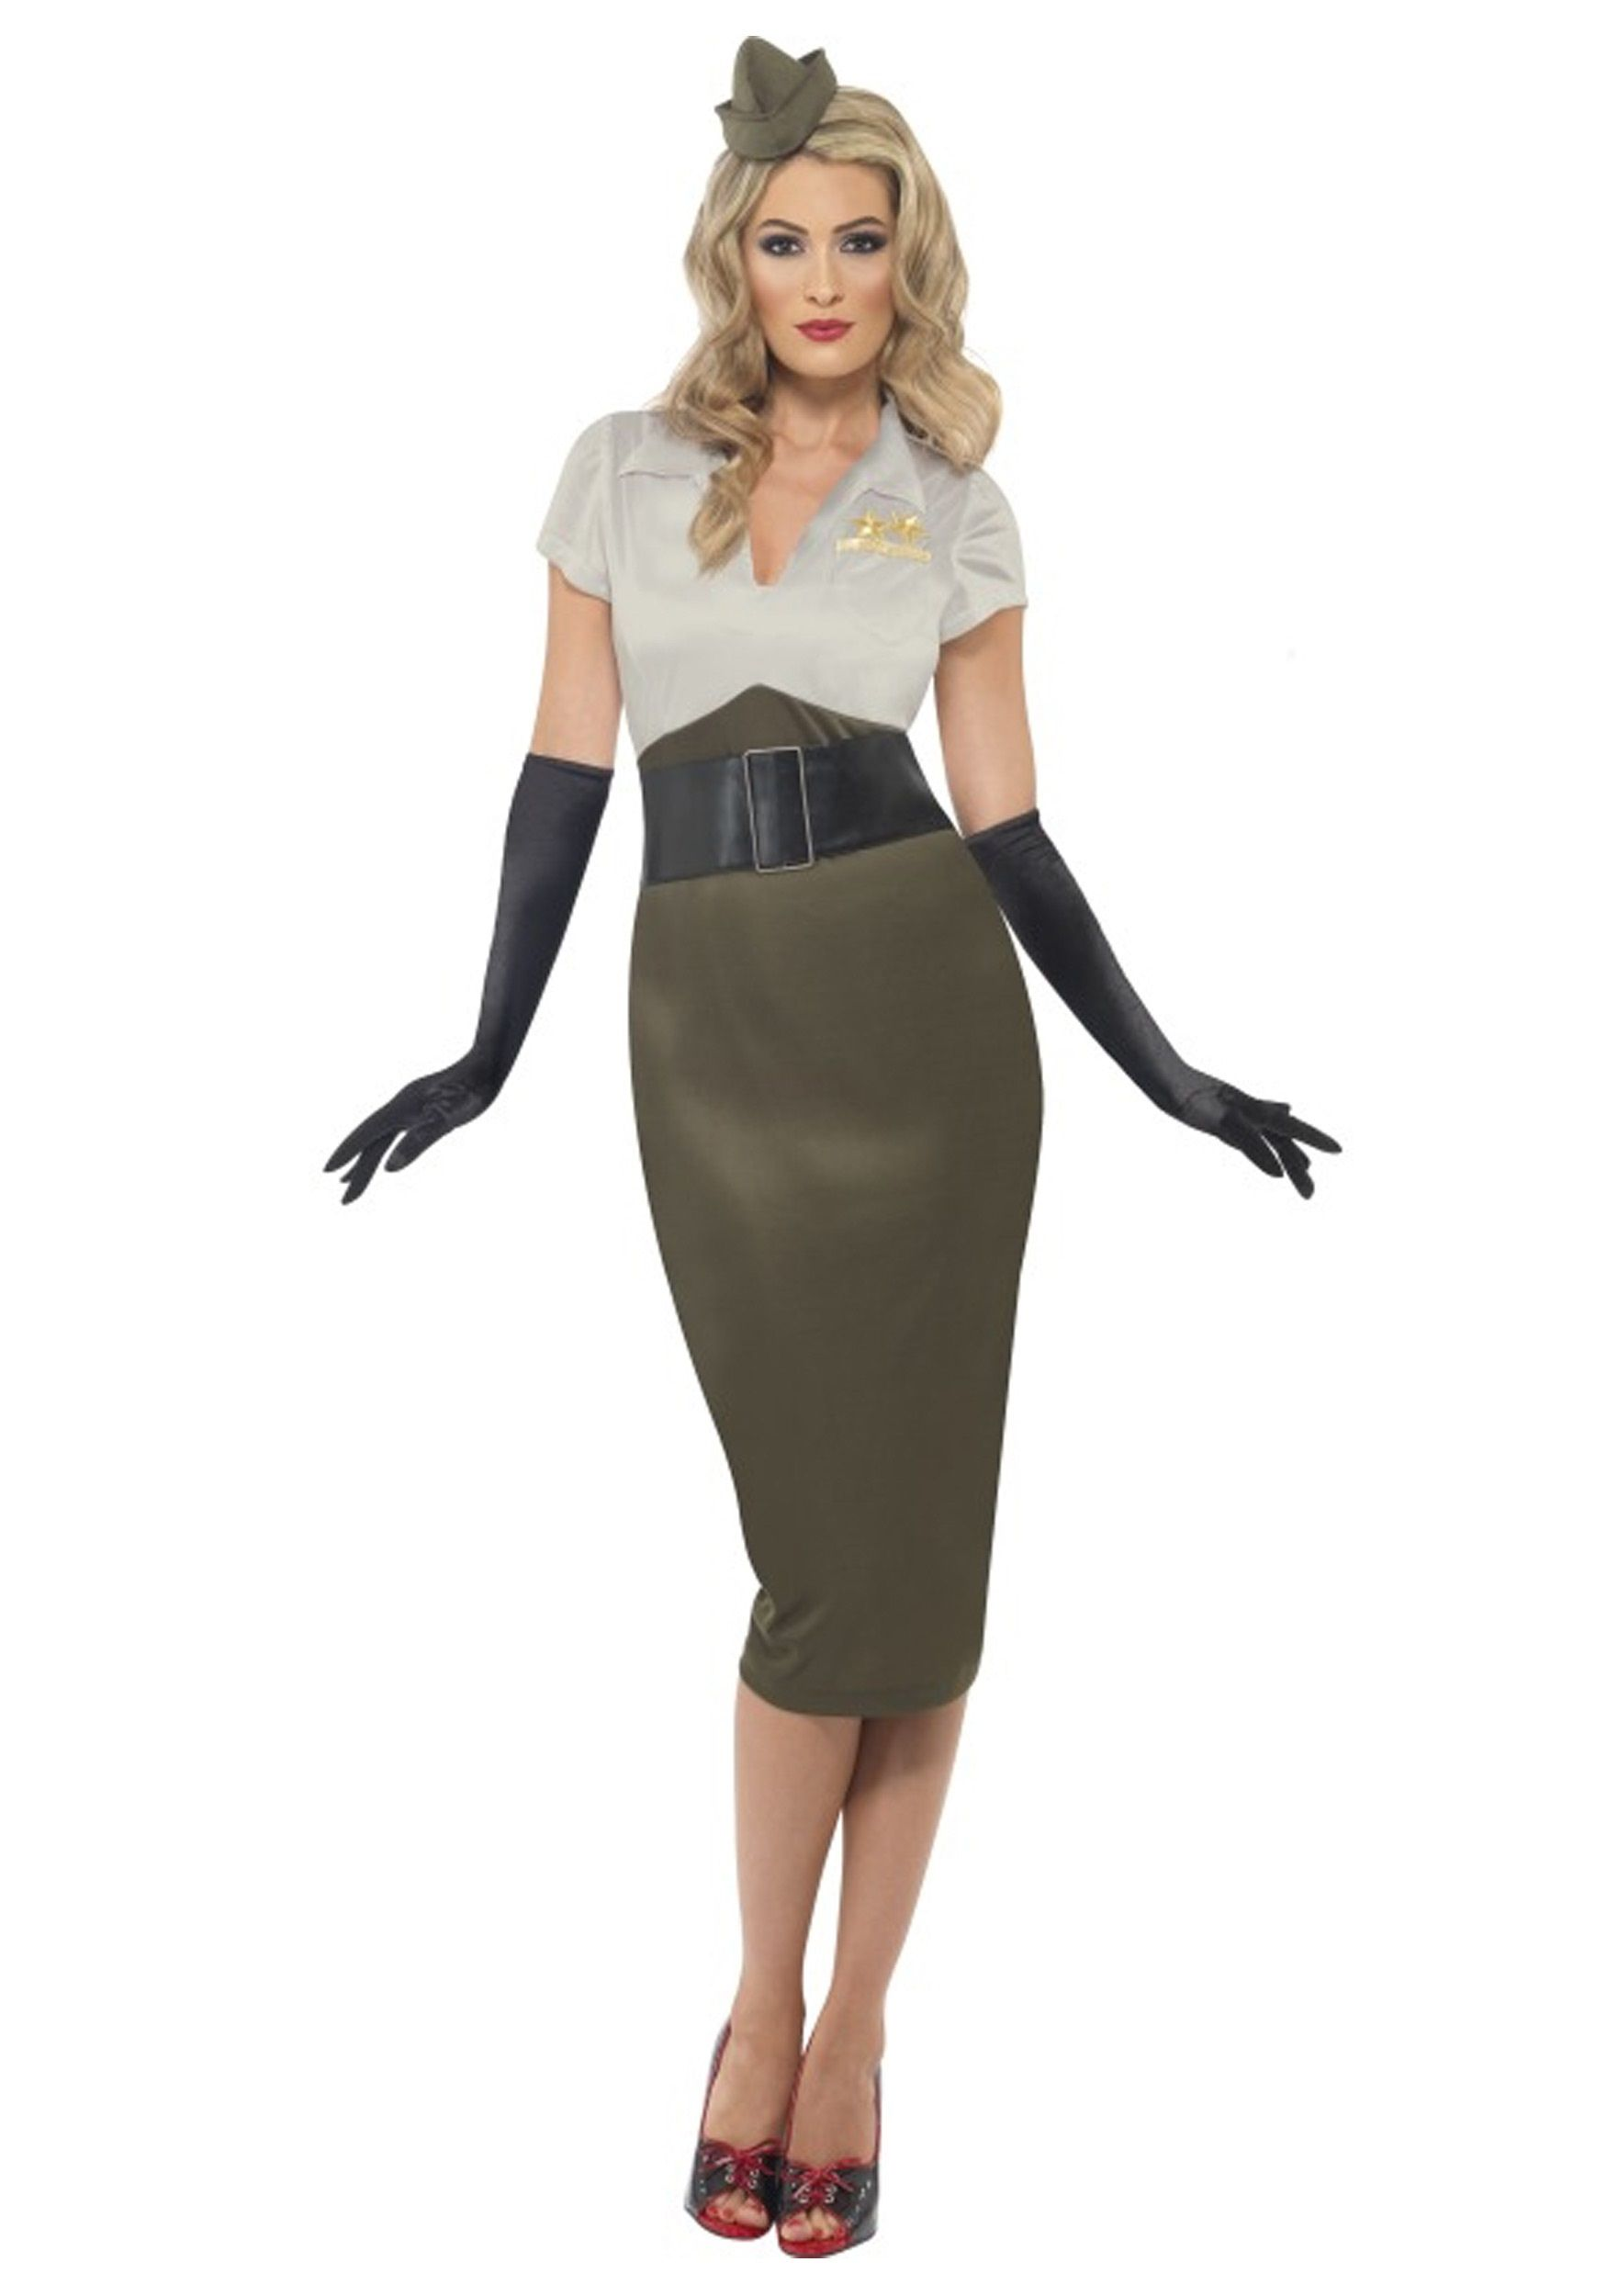 d0cdd5bef7b6 Your photo will definitely grace his locker when you wear this WW2 Army Pin  Up Darling Costume! Look just like a 1940s USO girl!